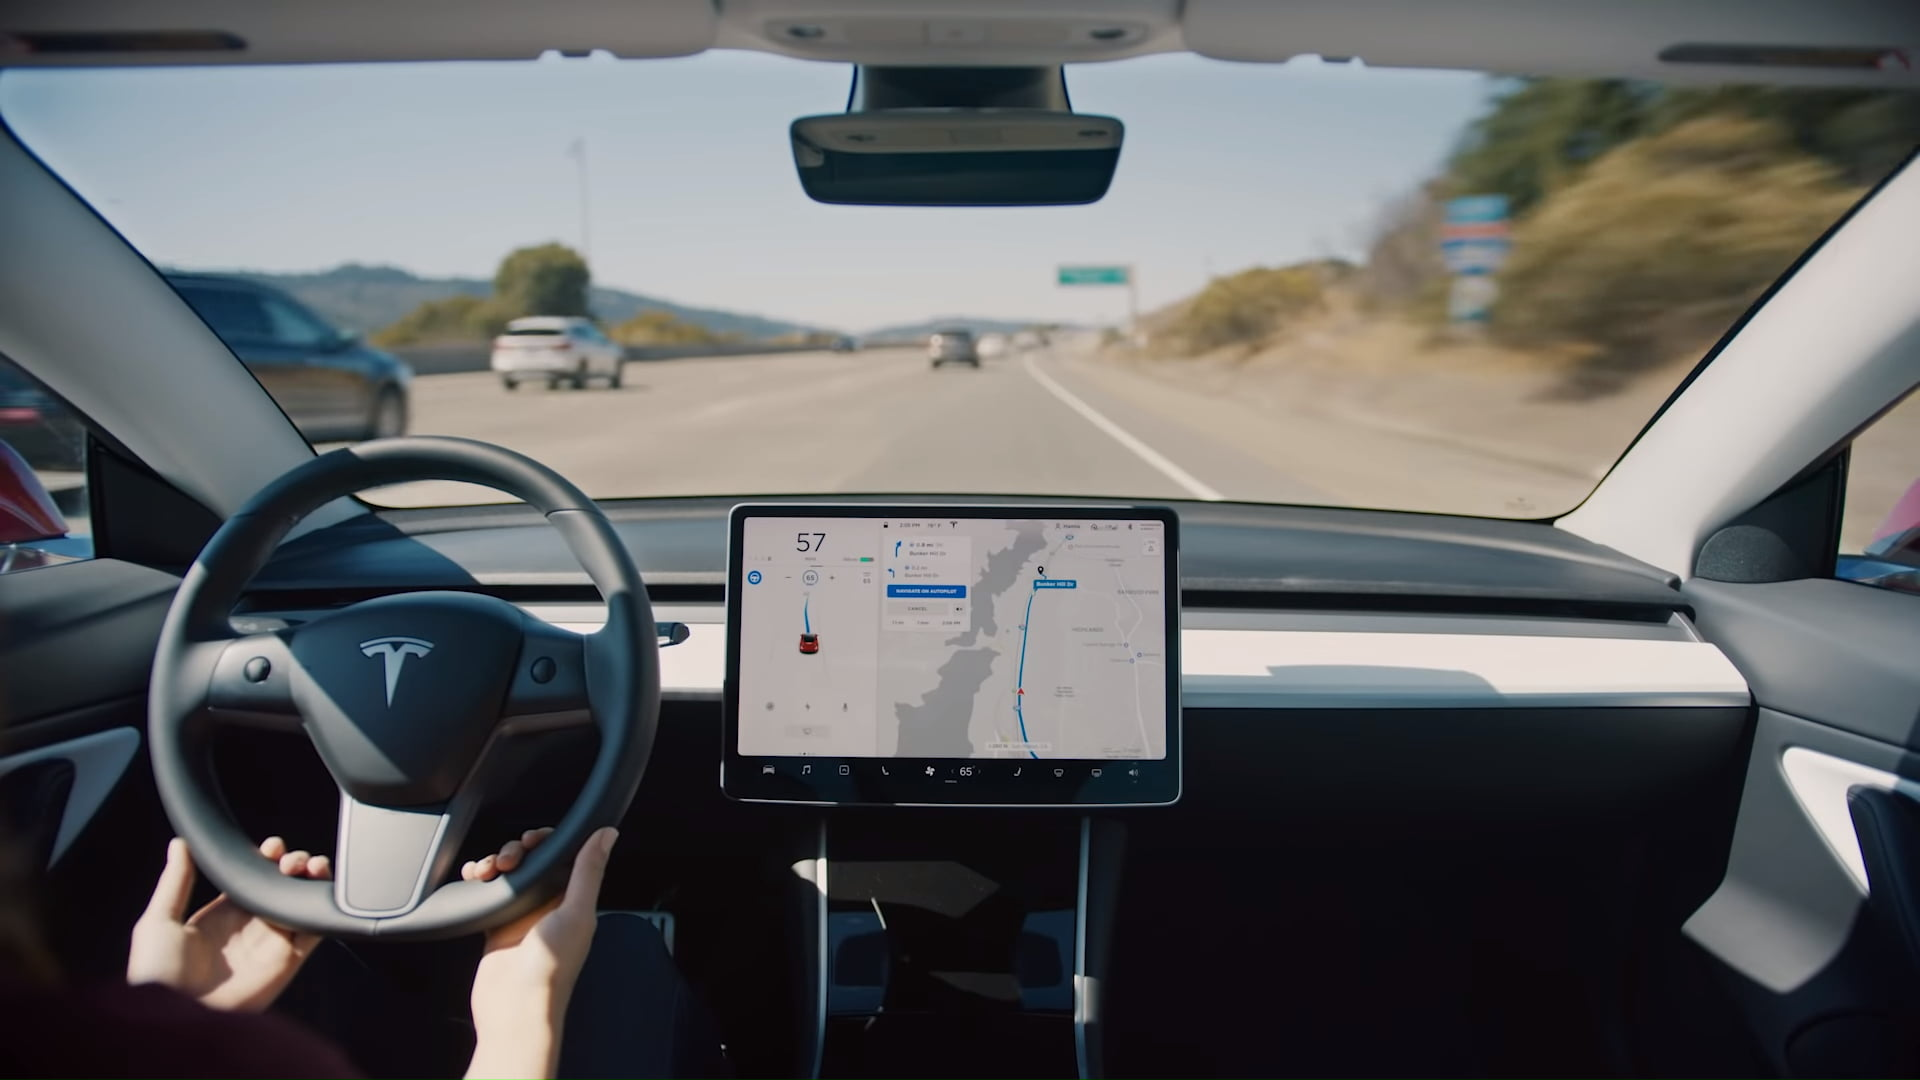 Tesla is releasing a Navigate on Autopilot feature for its vehicles